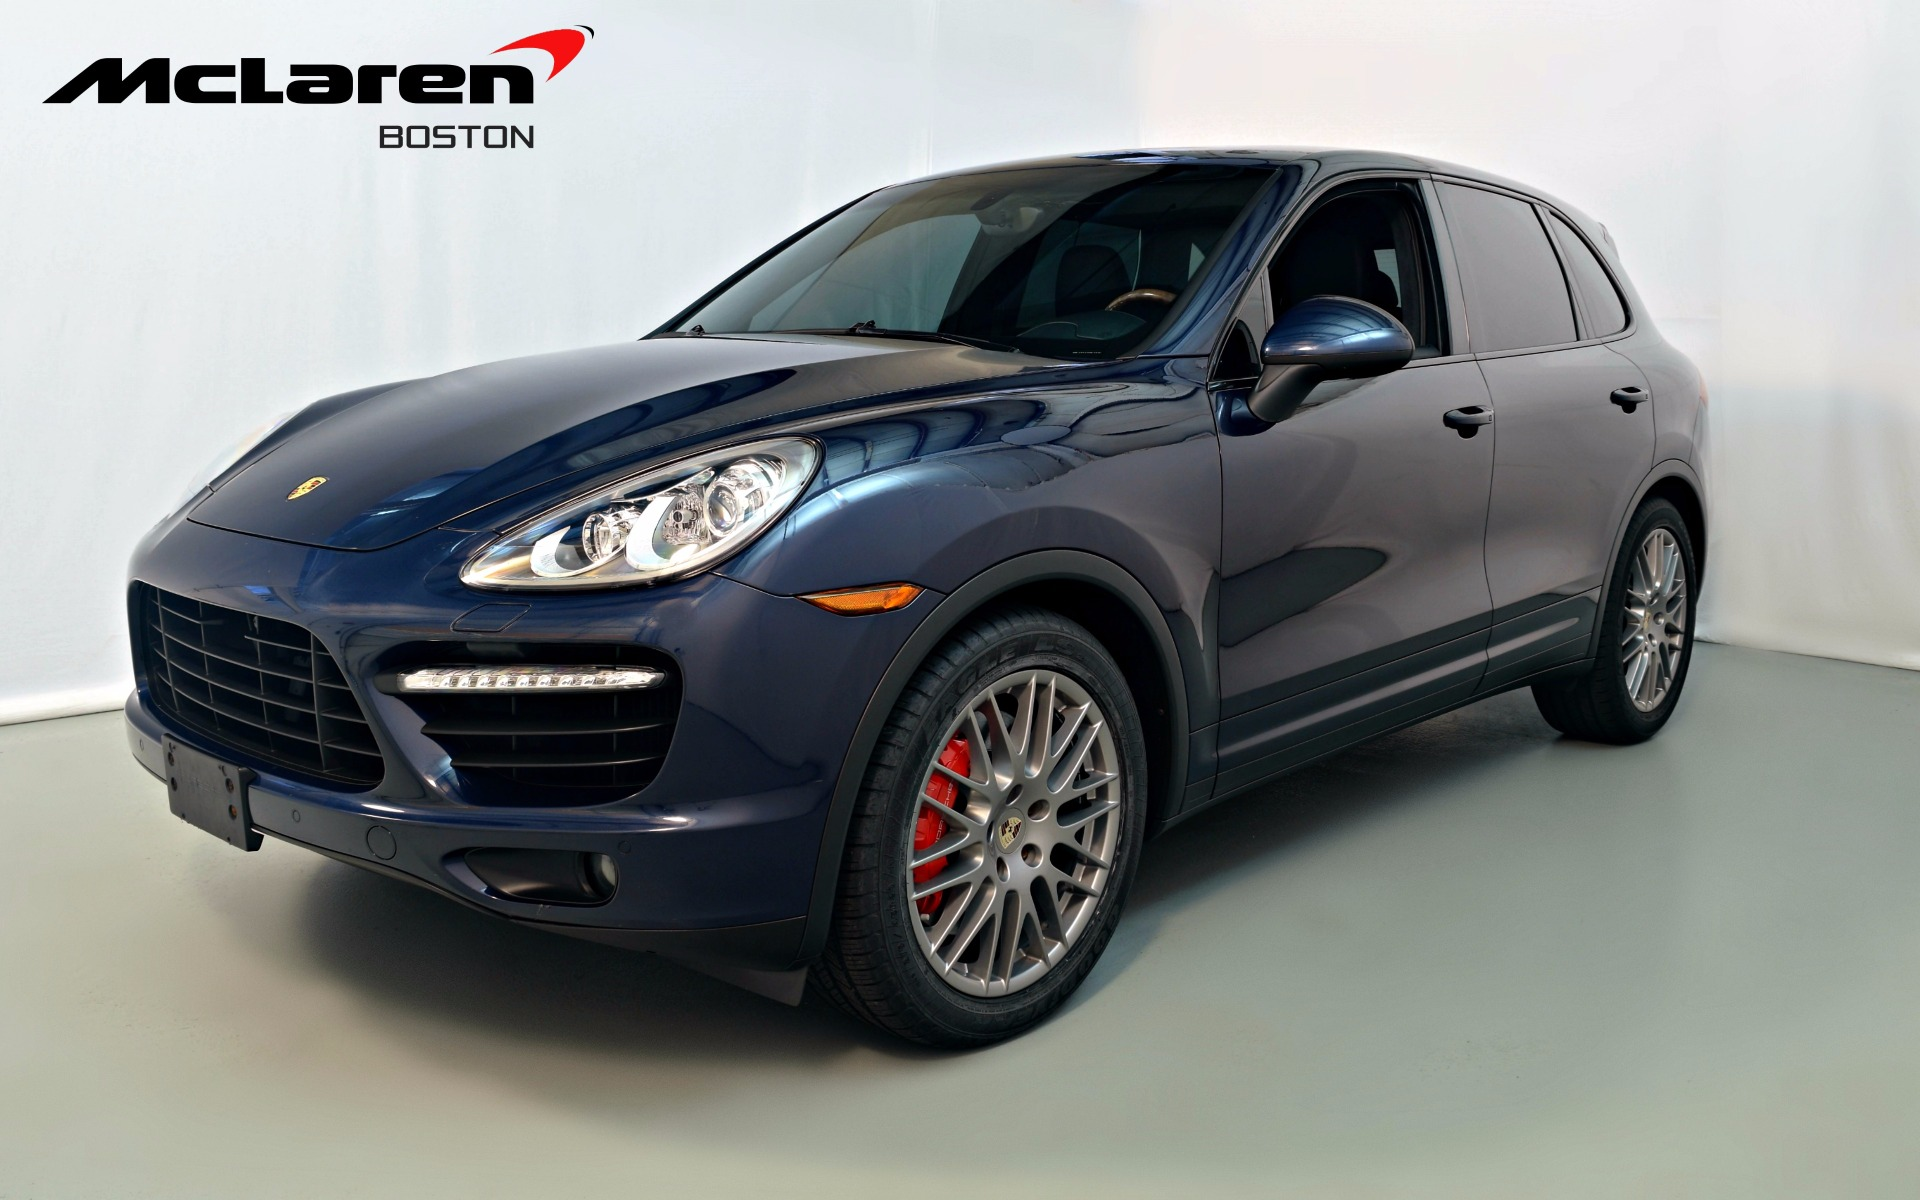 2011 porsche cayenne turbo for sale in norwell ma a87672. Black Bedroom Furniture Sets. Home Design Ideas